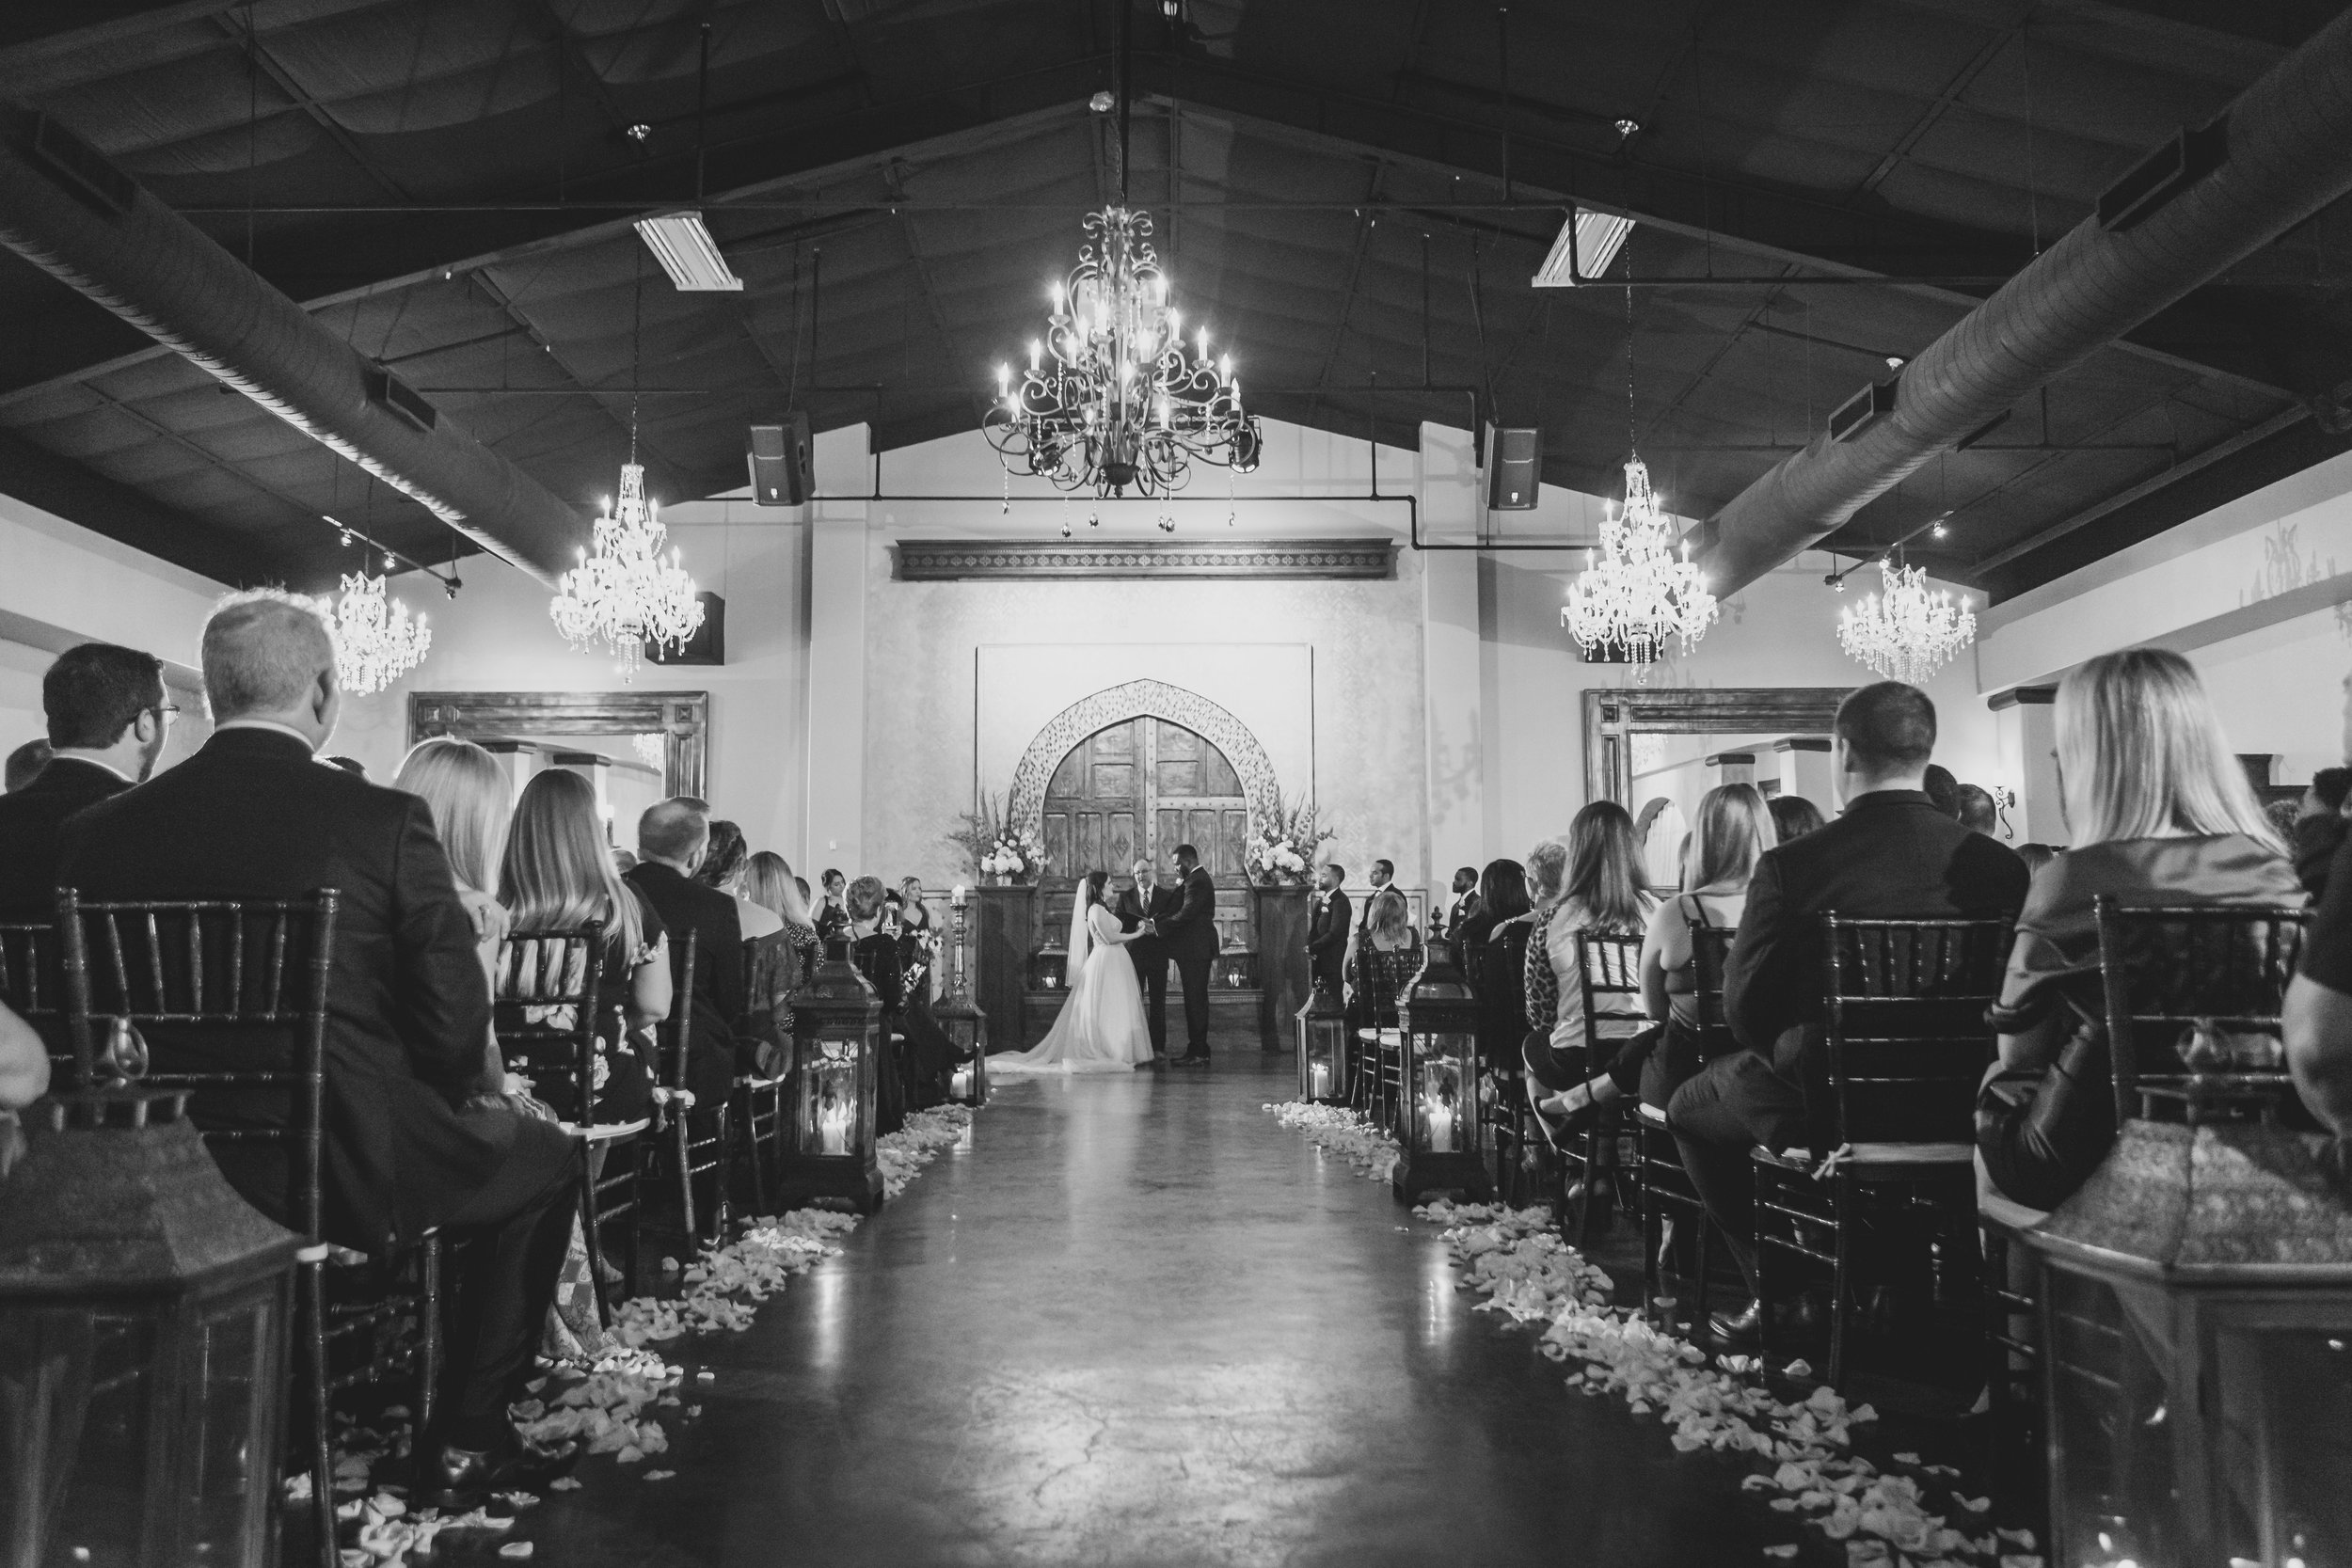 Black and white down the aisle of a bride and groom at the altar.